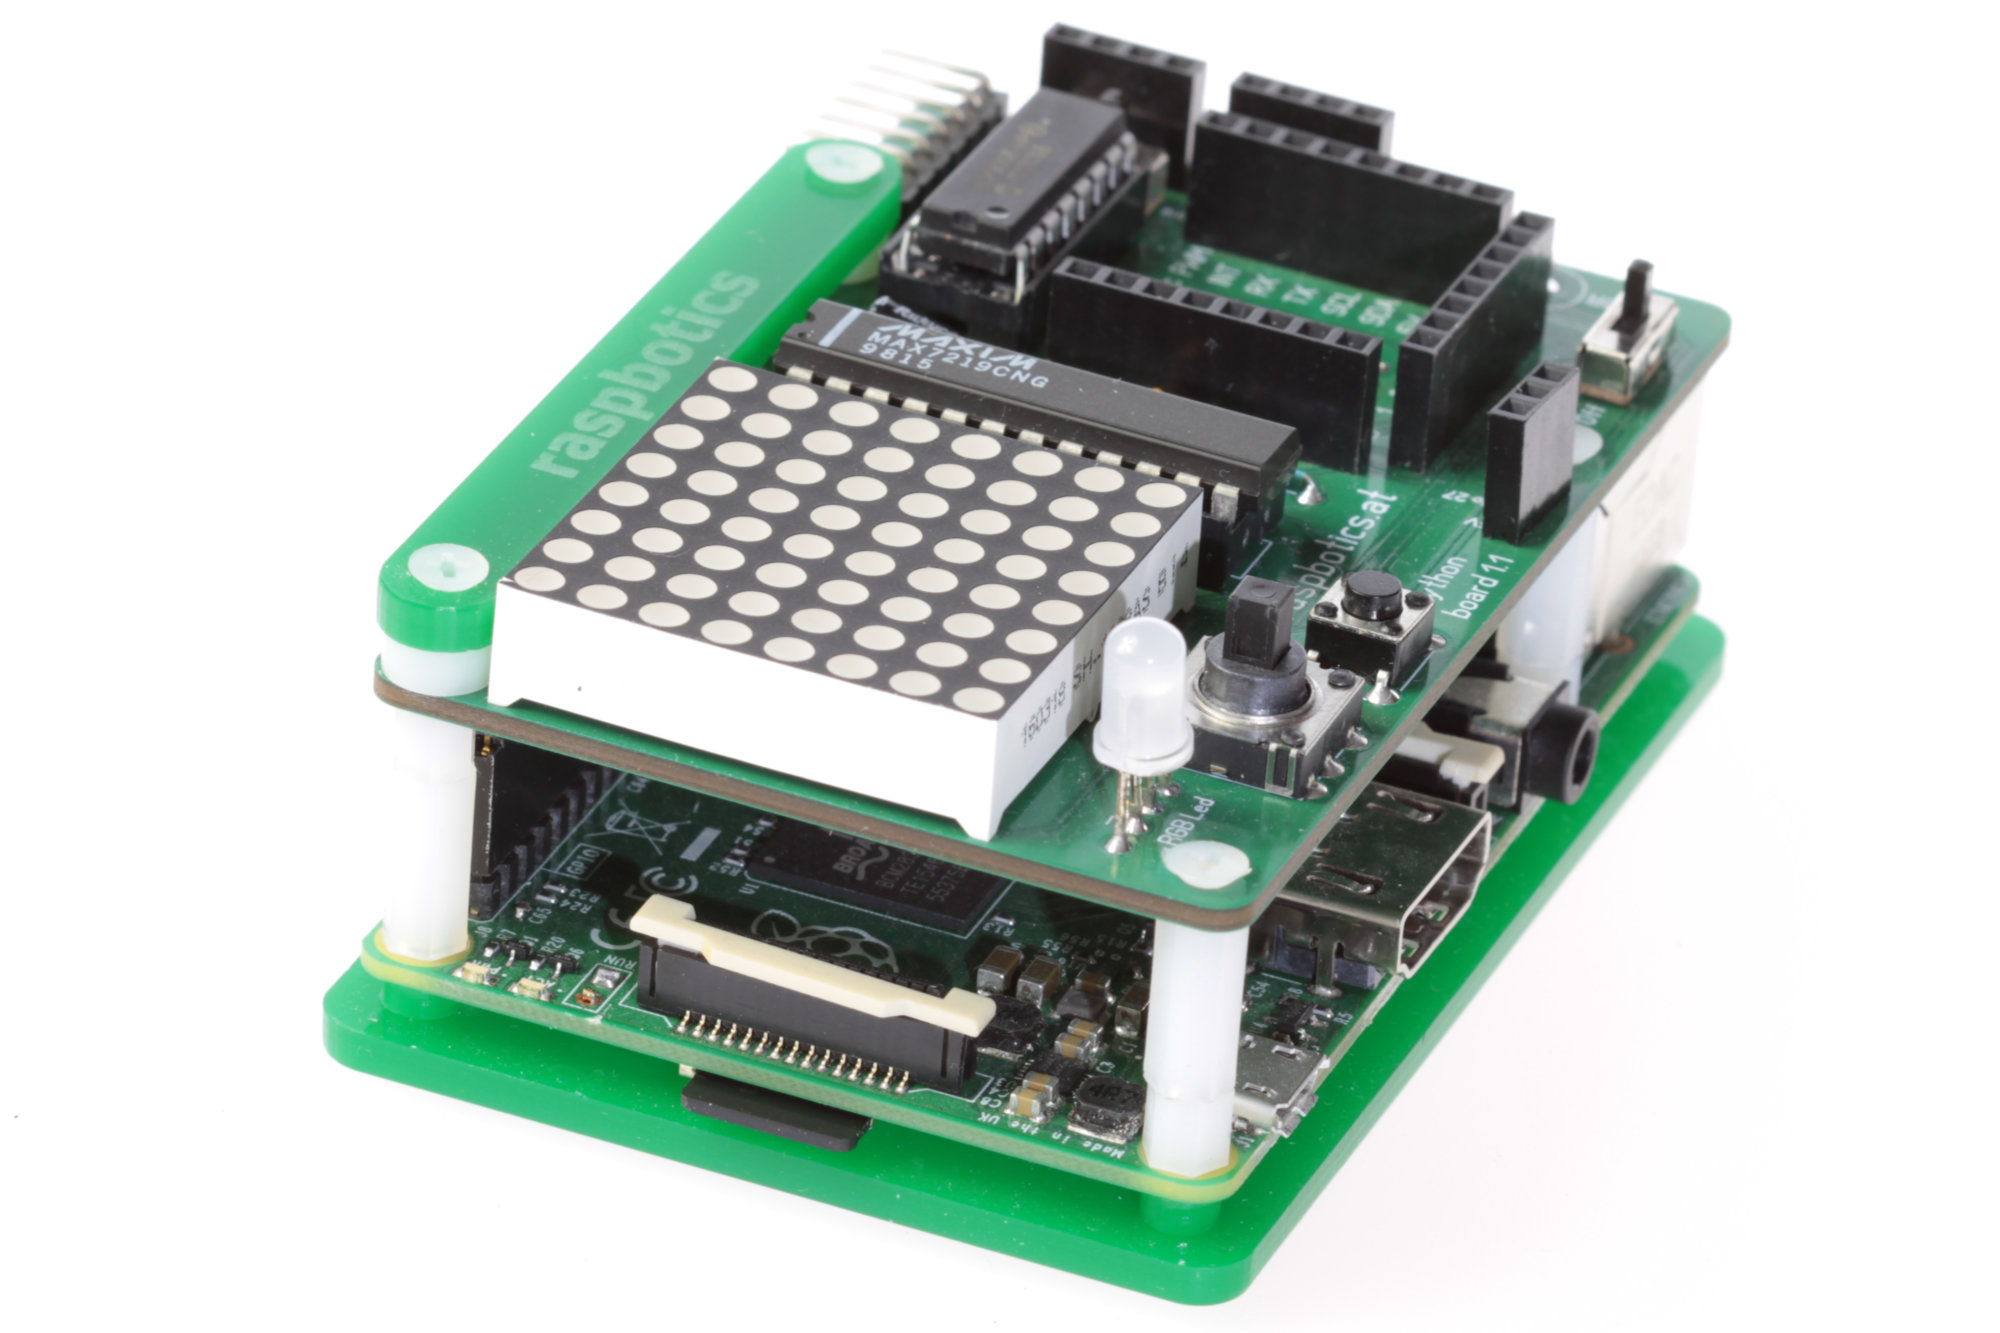 Led Matrix ansteuern mit Python am Raspberry Pi